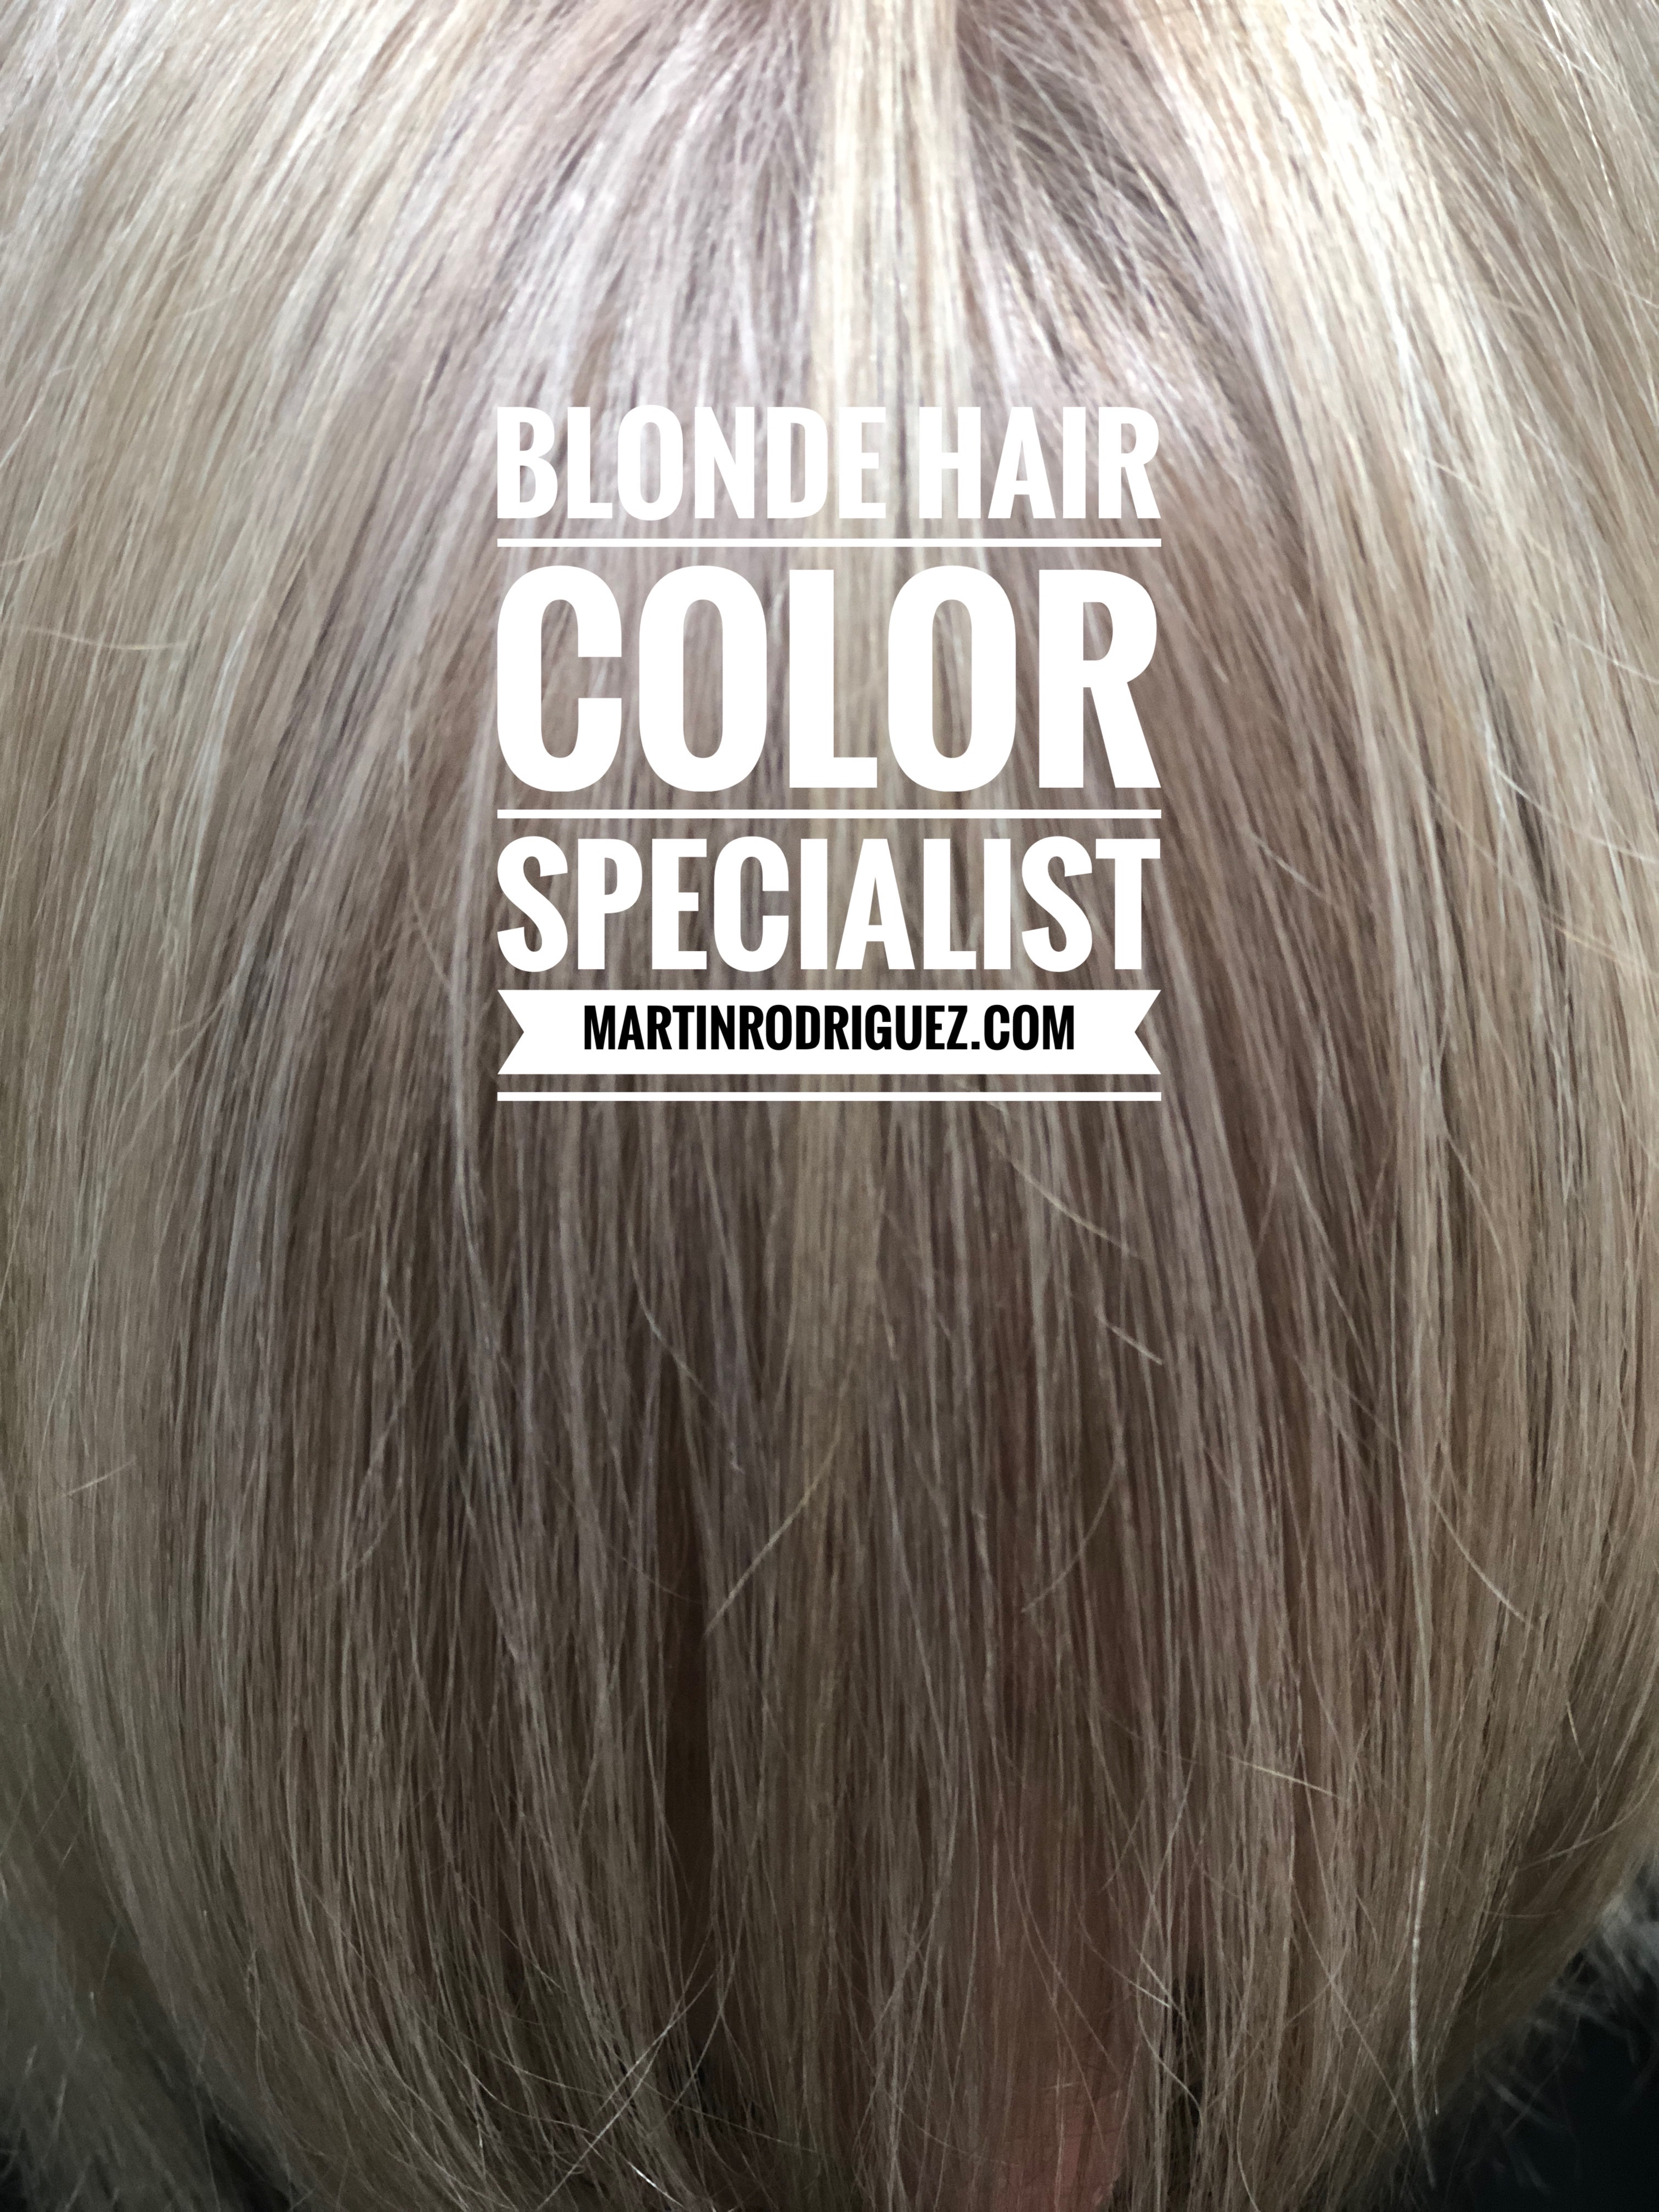 White Blonde Color For Hair Hair Colorist Martin Rodriguez Ooh